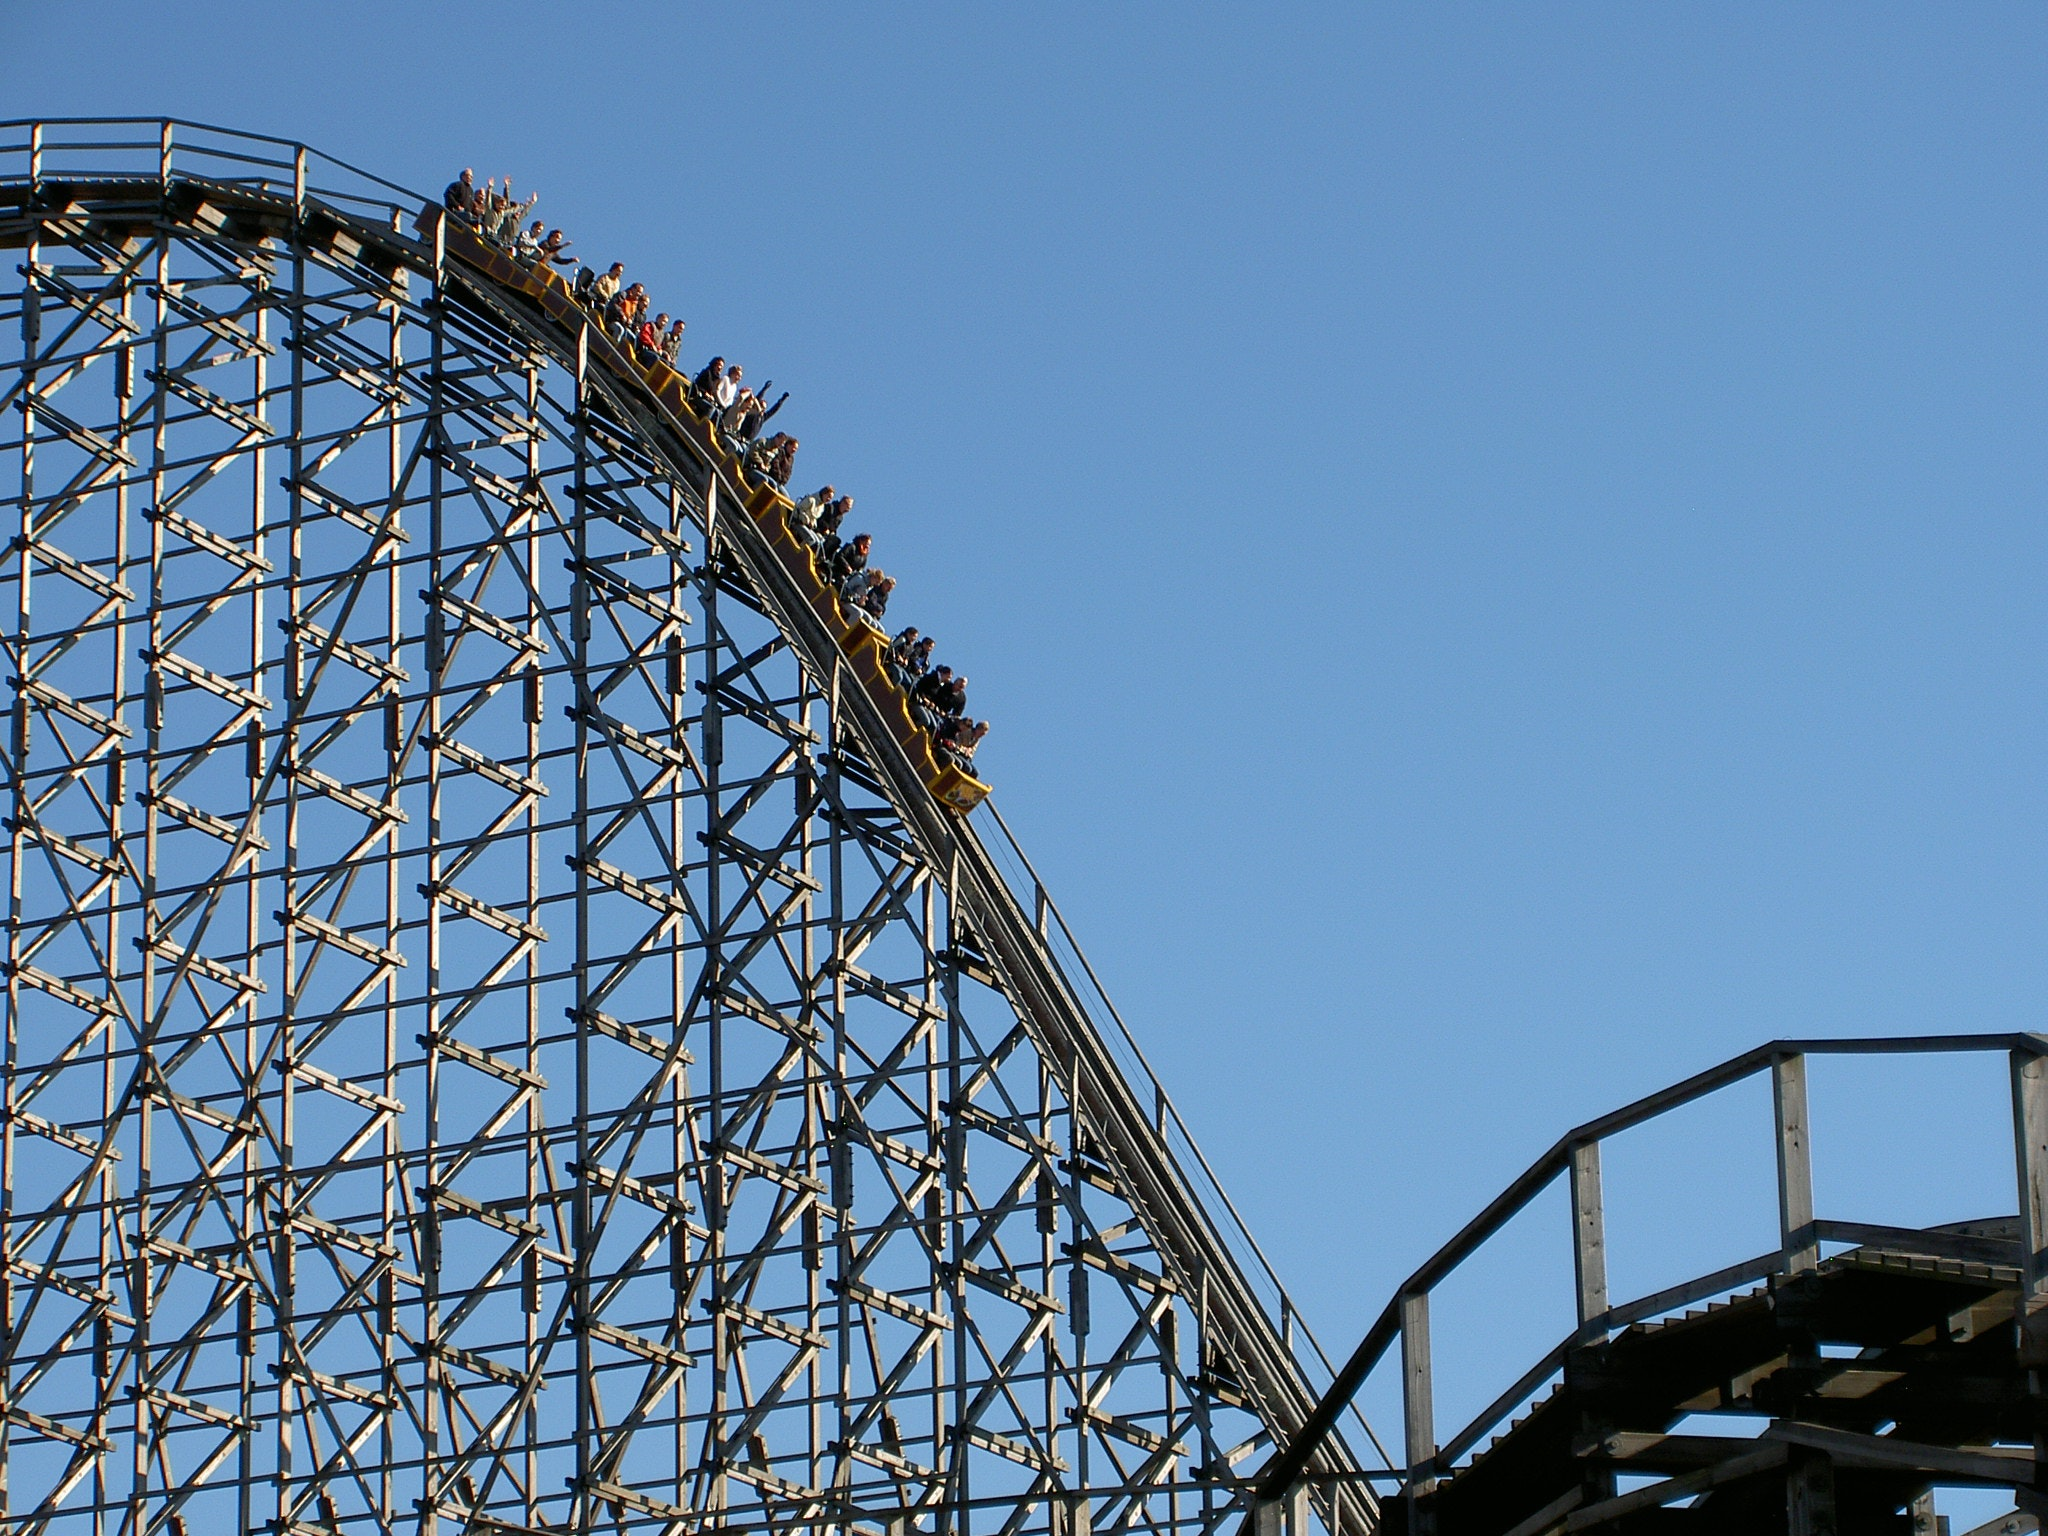 Public Sector Retirement - PSR - Is TSP 2020 the Scariest Roller-Coaster Ride or a Merry-go-Round?